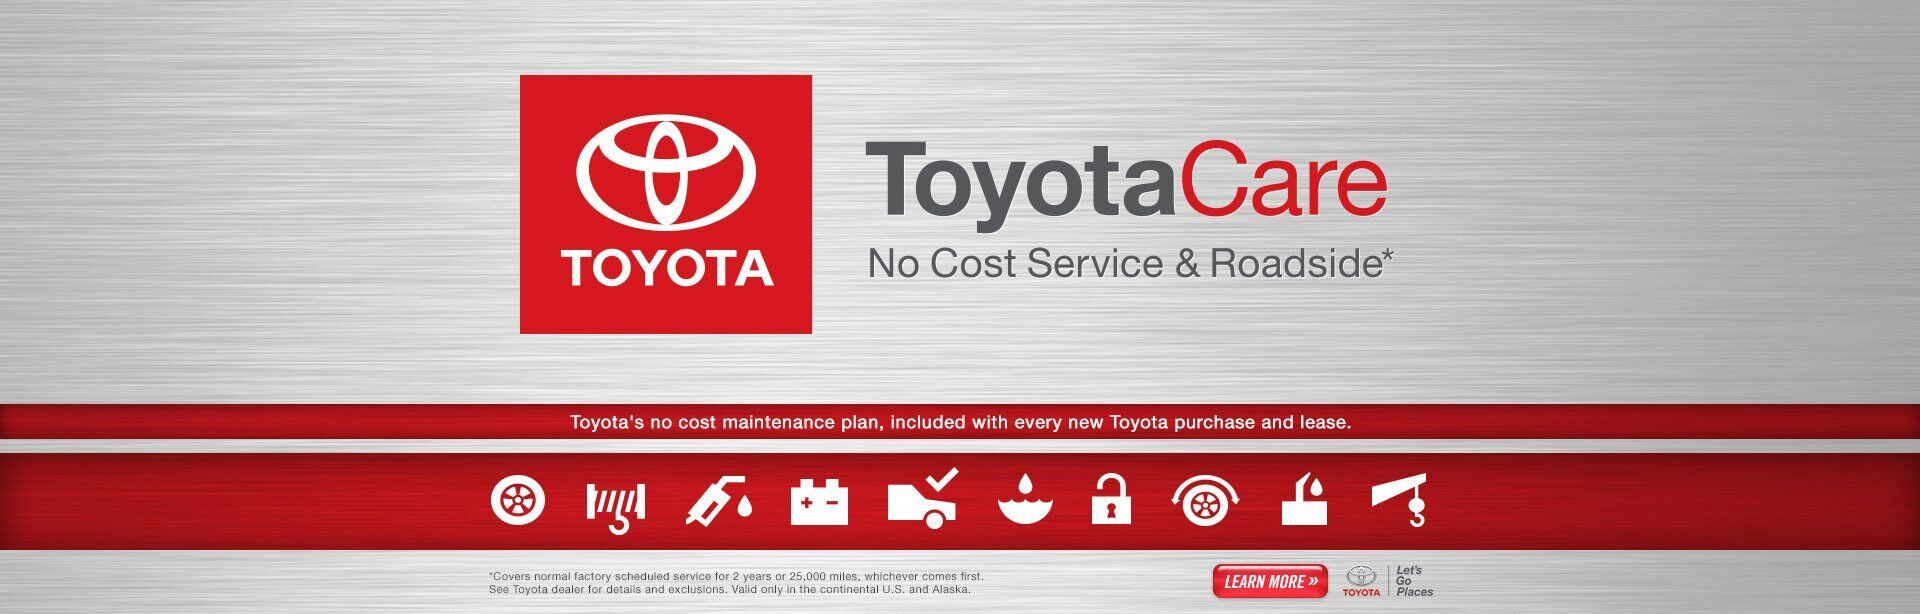 ToyotaCare Program